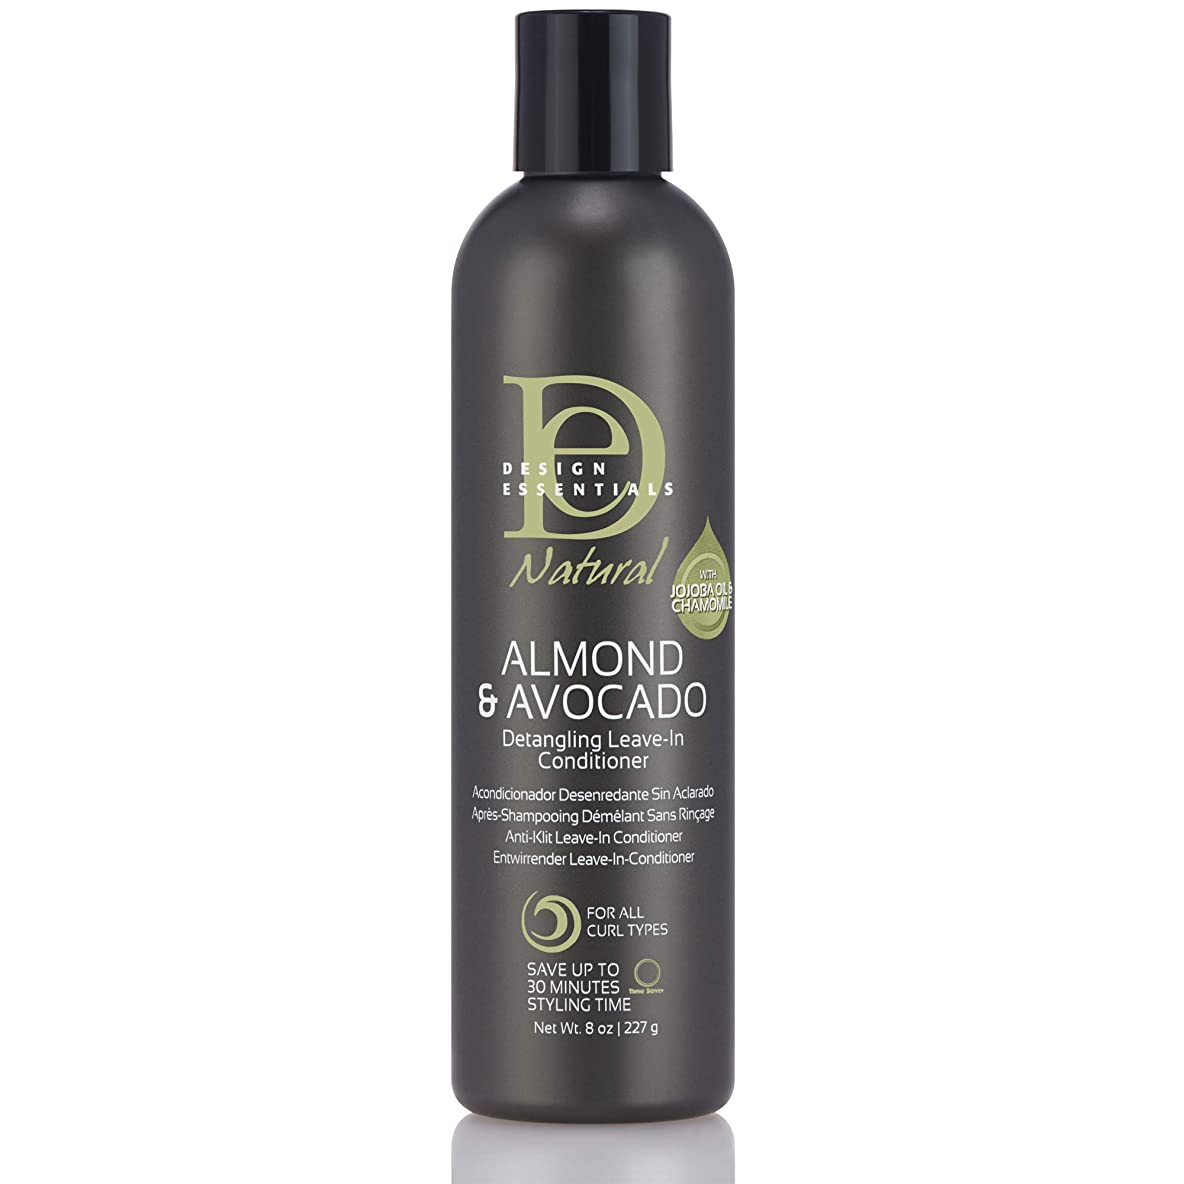 イノセンス反論者薄暗いDesign Essentials Natural Instant Detangling Leave-In Conditioner for Healthy, Moisturized, Luminous Frizz-Free Hair-Almond & Avocado Collection, 8oz.